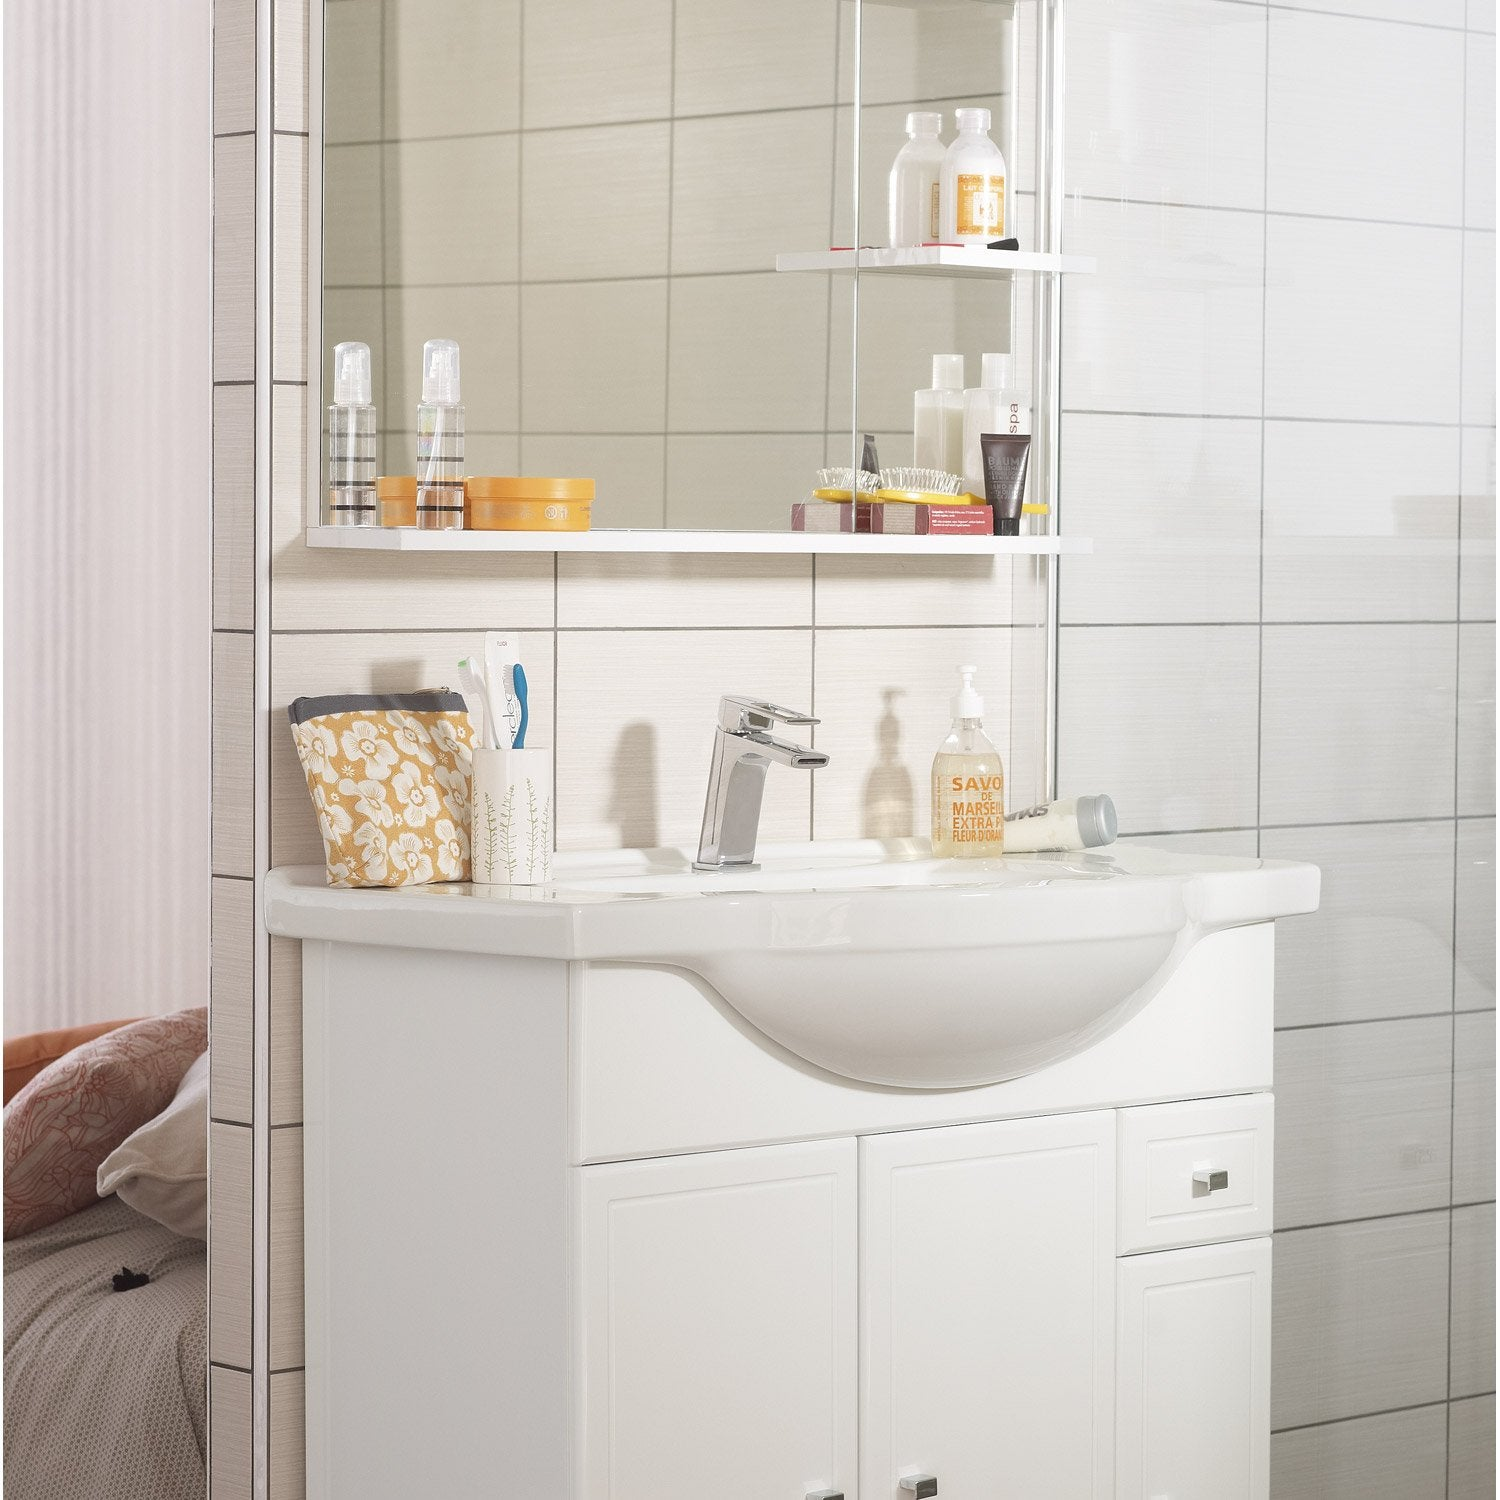 Meuble vasque 85 cm galice leroy merlin for Vasque salle de bain leroy merlin